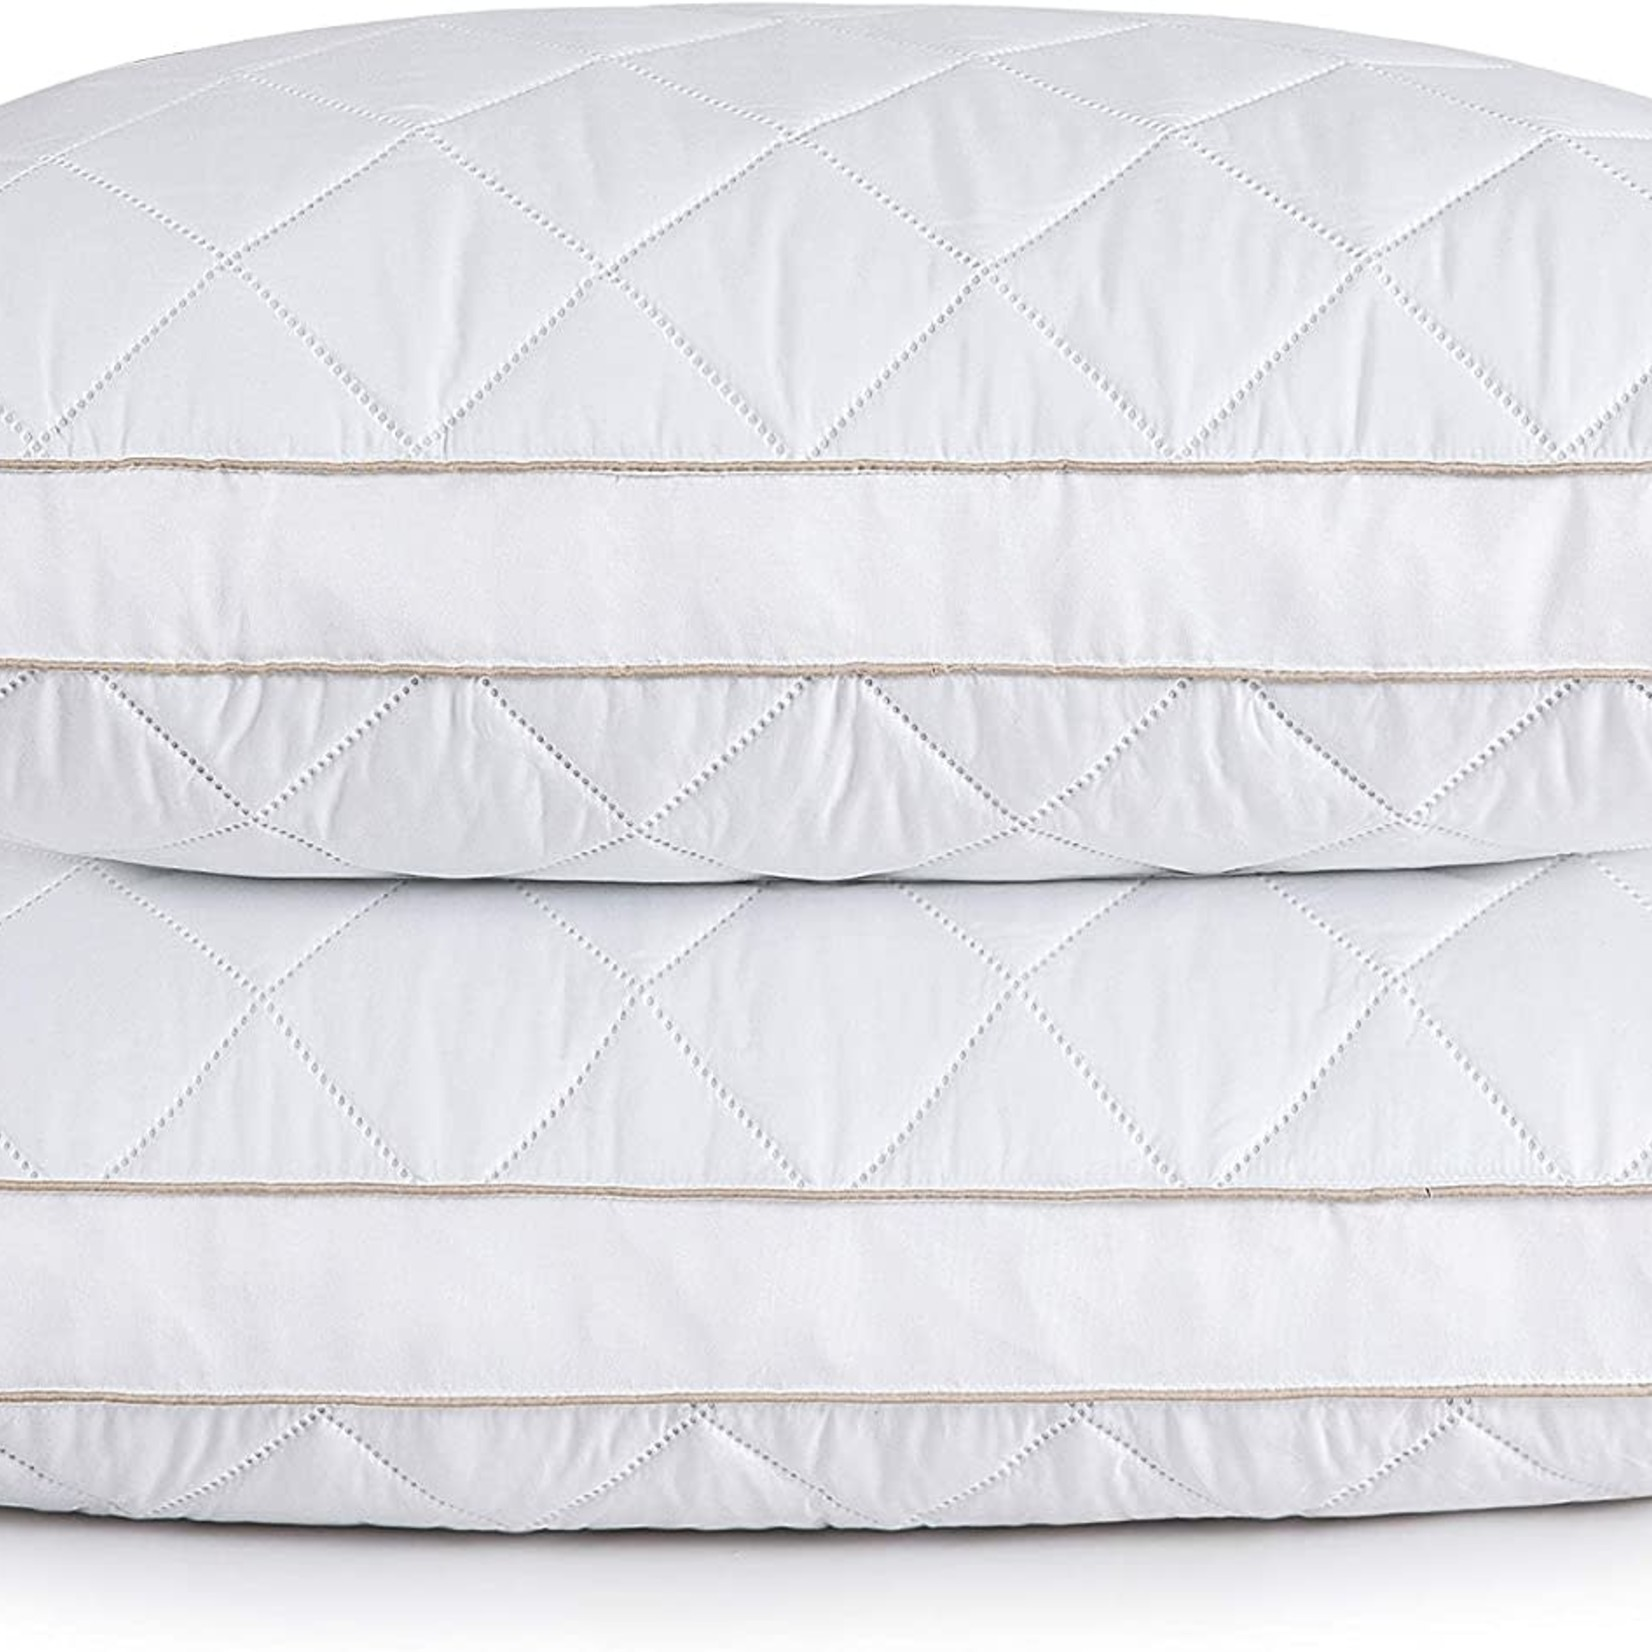 puredown Natural Goose Down Feather Pillow KING